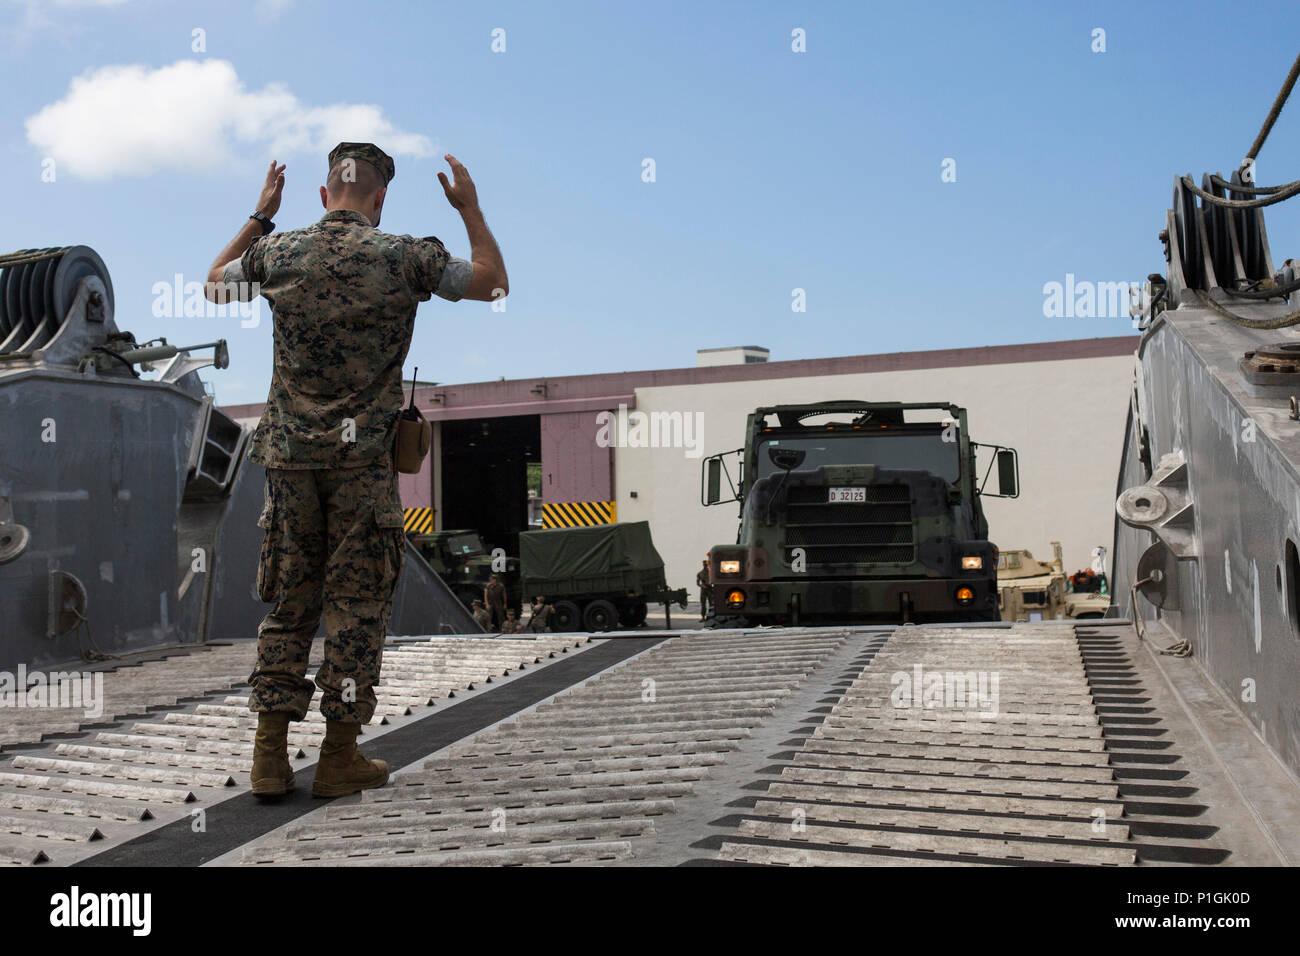 Cpl. Tyler Odeneal guides a 7-ton truck up a ramp to embark the USNS Fall River (T-EPF-4) at Naha Port, Okinawa, Japan during Blue Chromite 2017, October 28, 2016. Blue Chromite is a U.S. – only exercise which strengthens the Navy-Marine Corps expeditionary, amphibious rapid-response capabilities based in Okinawa and the greater Indo-Asia-Pacific region. Odeneall, from Hopedale, Illinois, is a motor transportation operator with Truck Company, 3rd Marine Division, Headquarters Battalion, III Marine Expeditionary Force. (U.S. Marine Corps photo by MCIPAC Combat Camera Lance Cpl. Tiana Boyd) - Stock Image